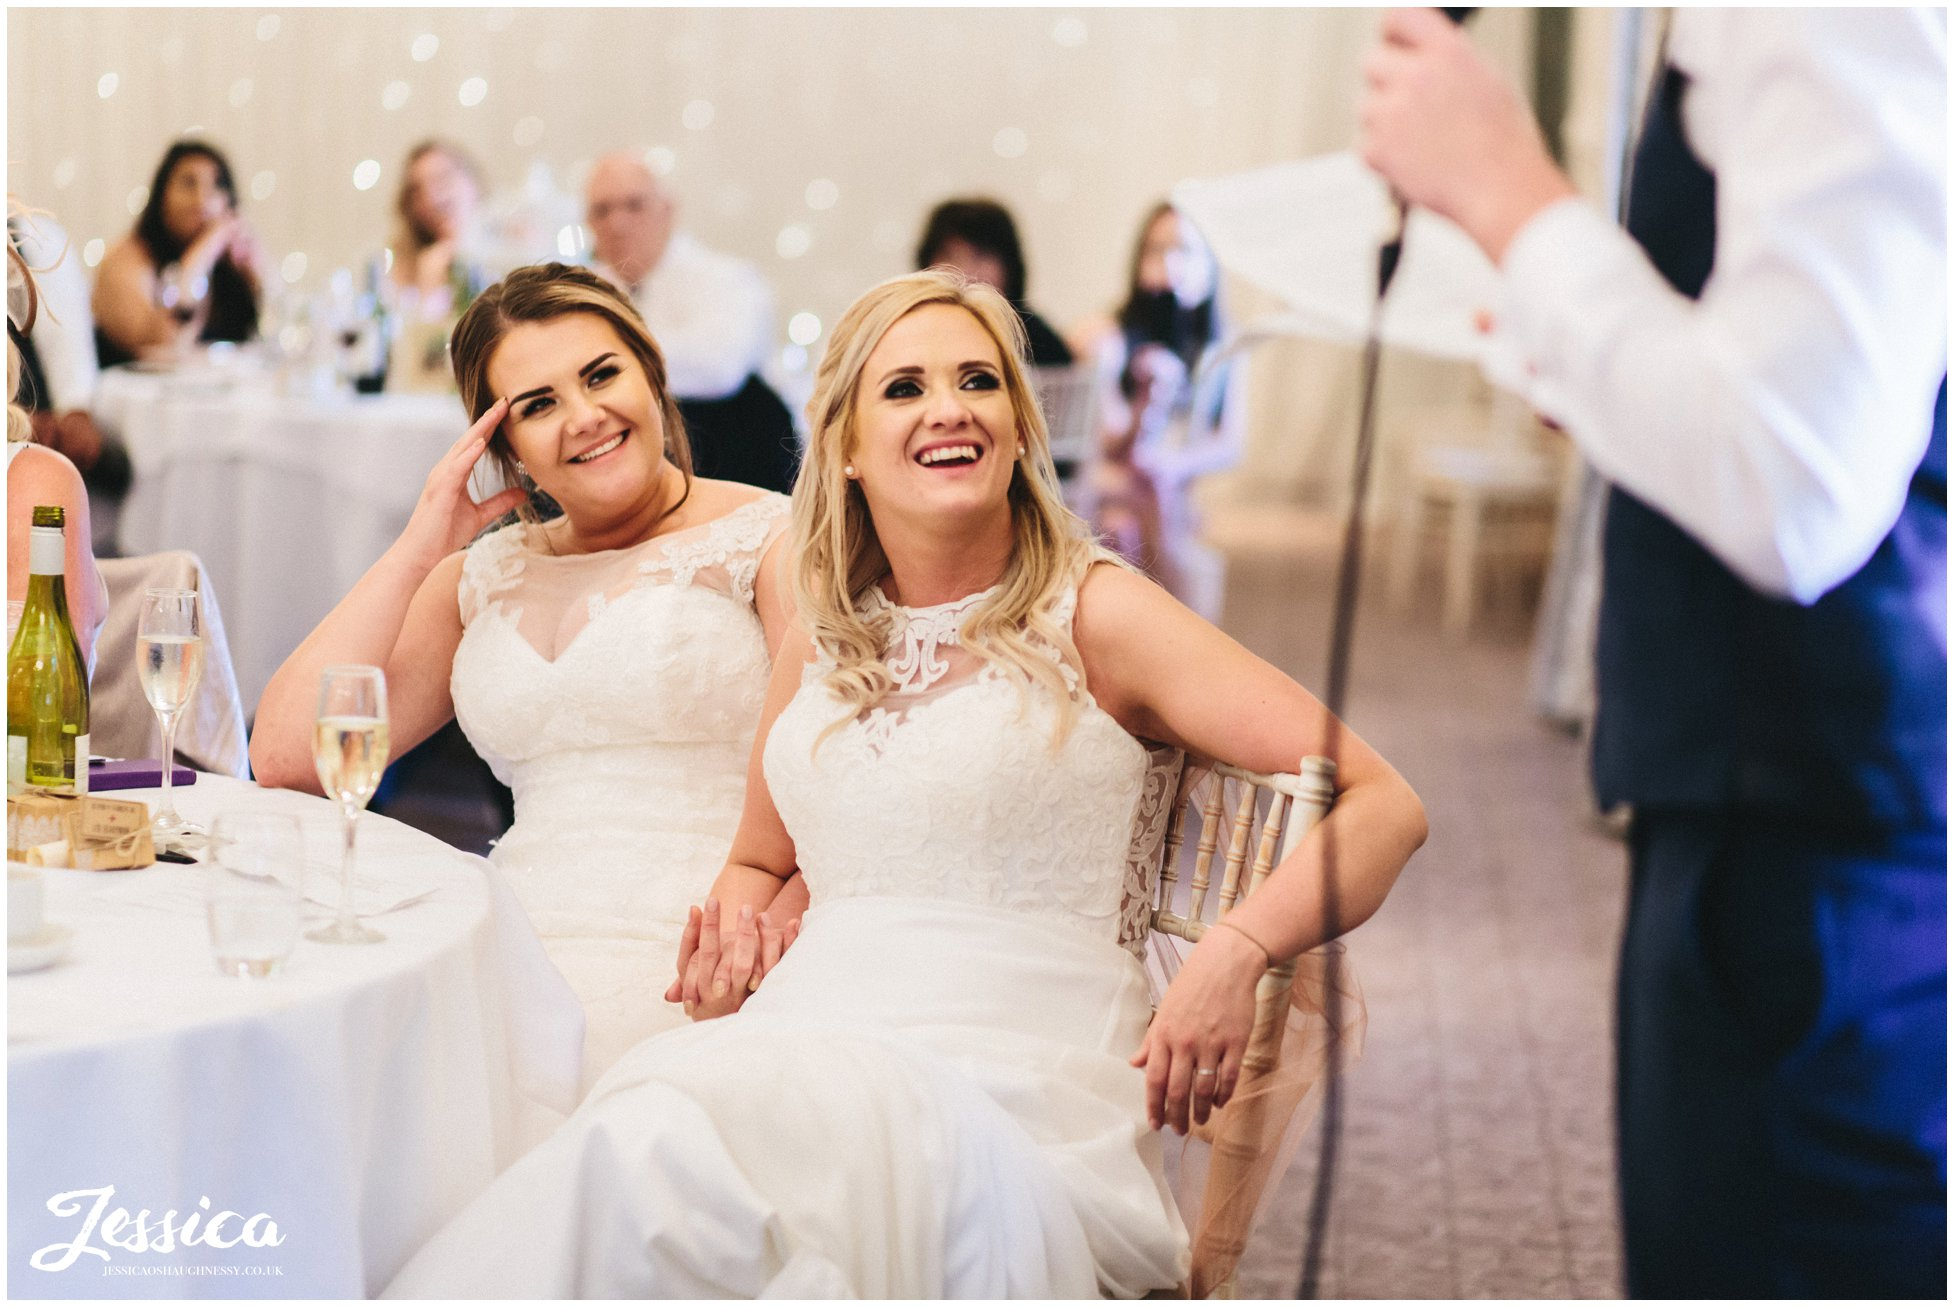 the couple laugh at an embarrassing story told by the best man